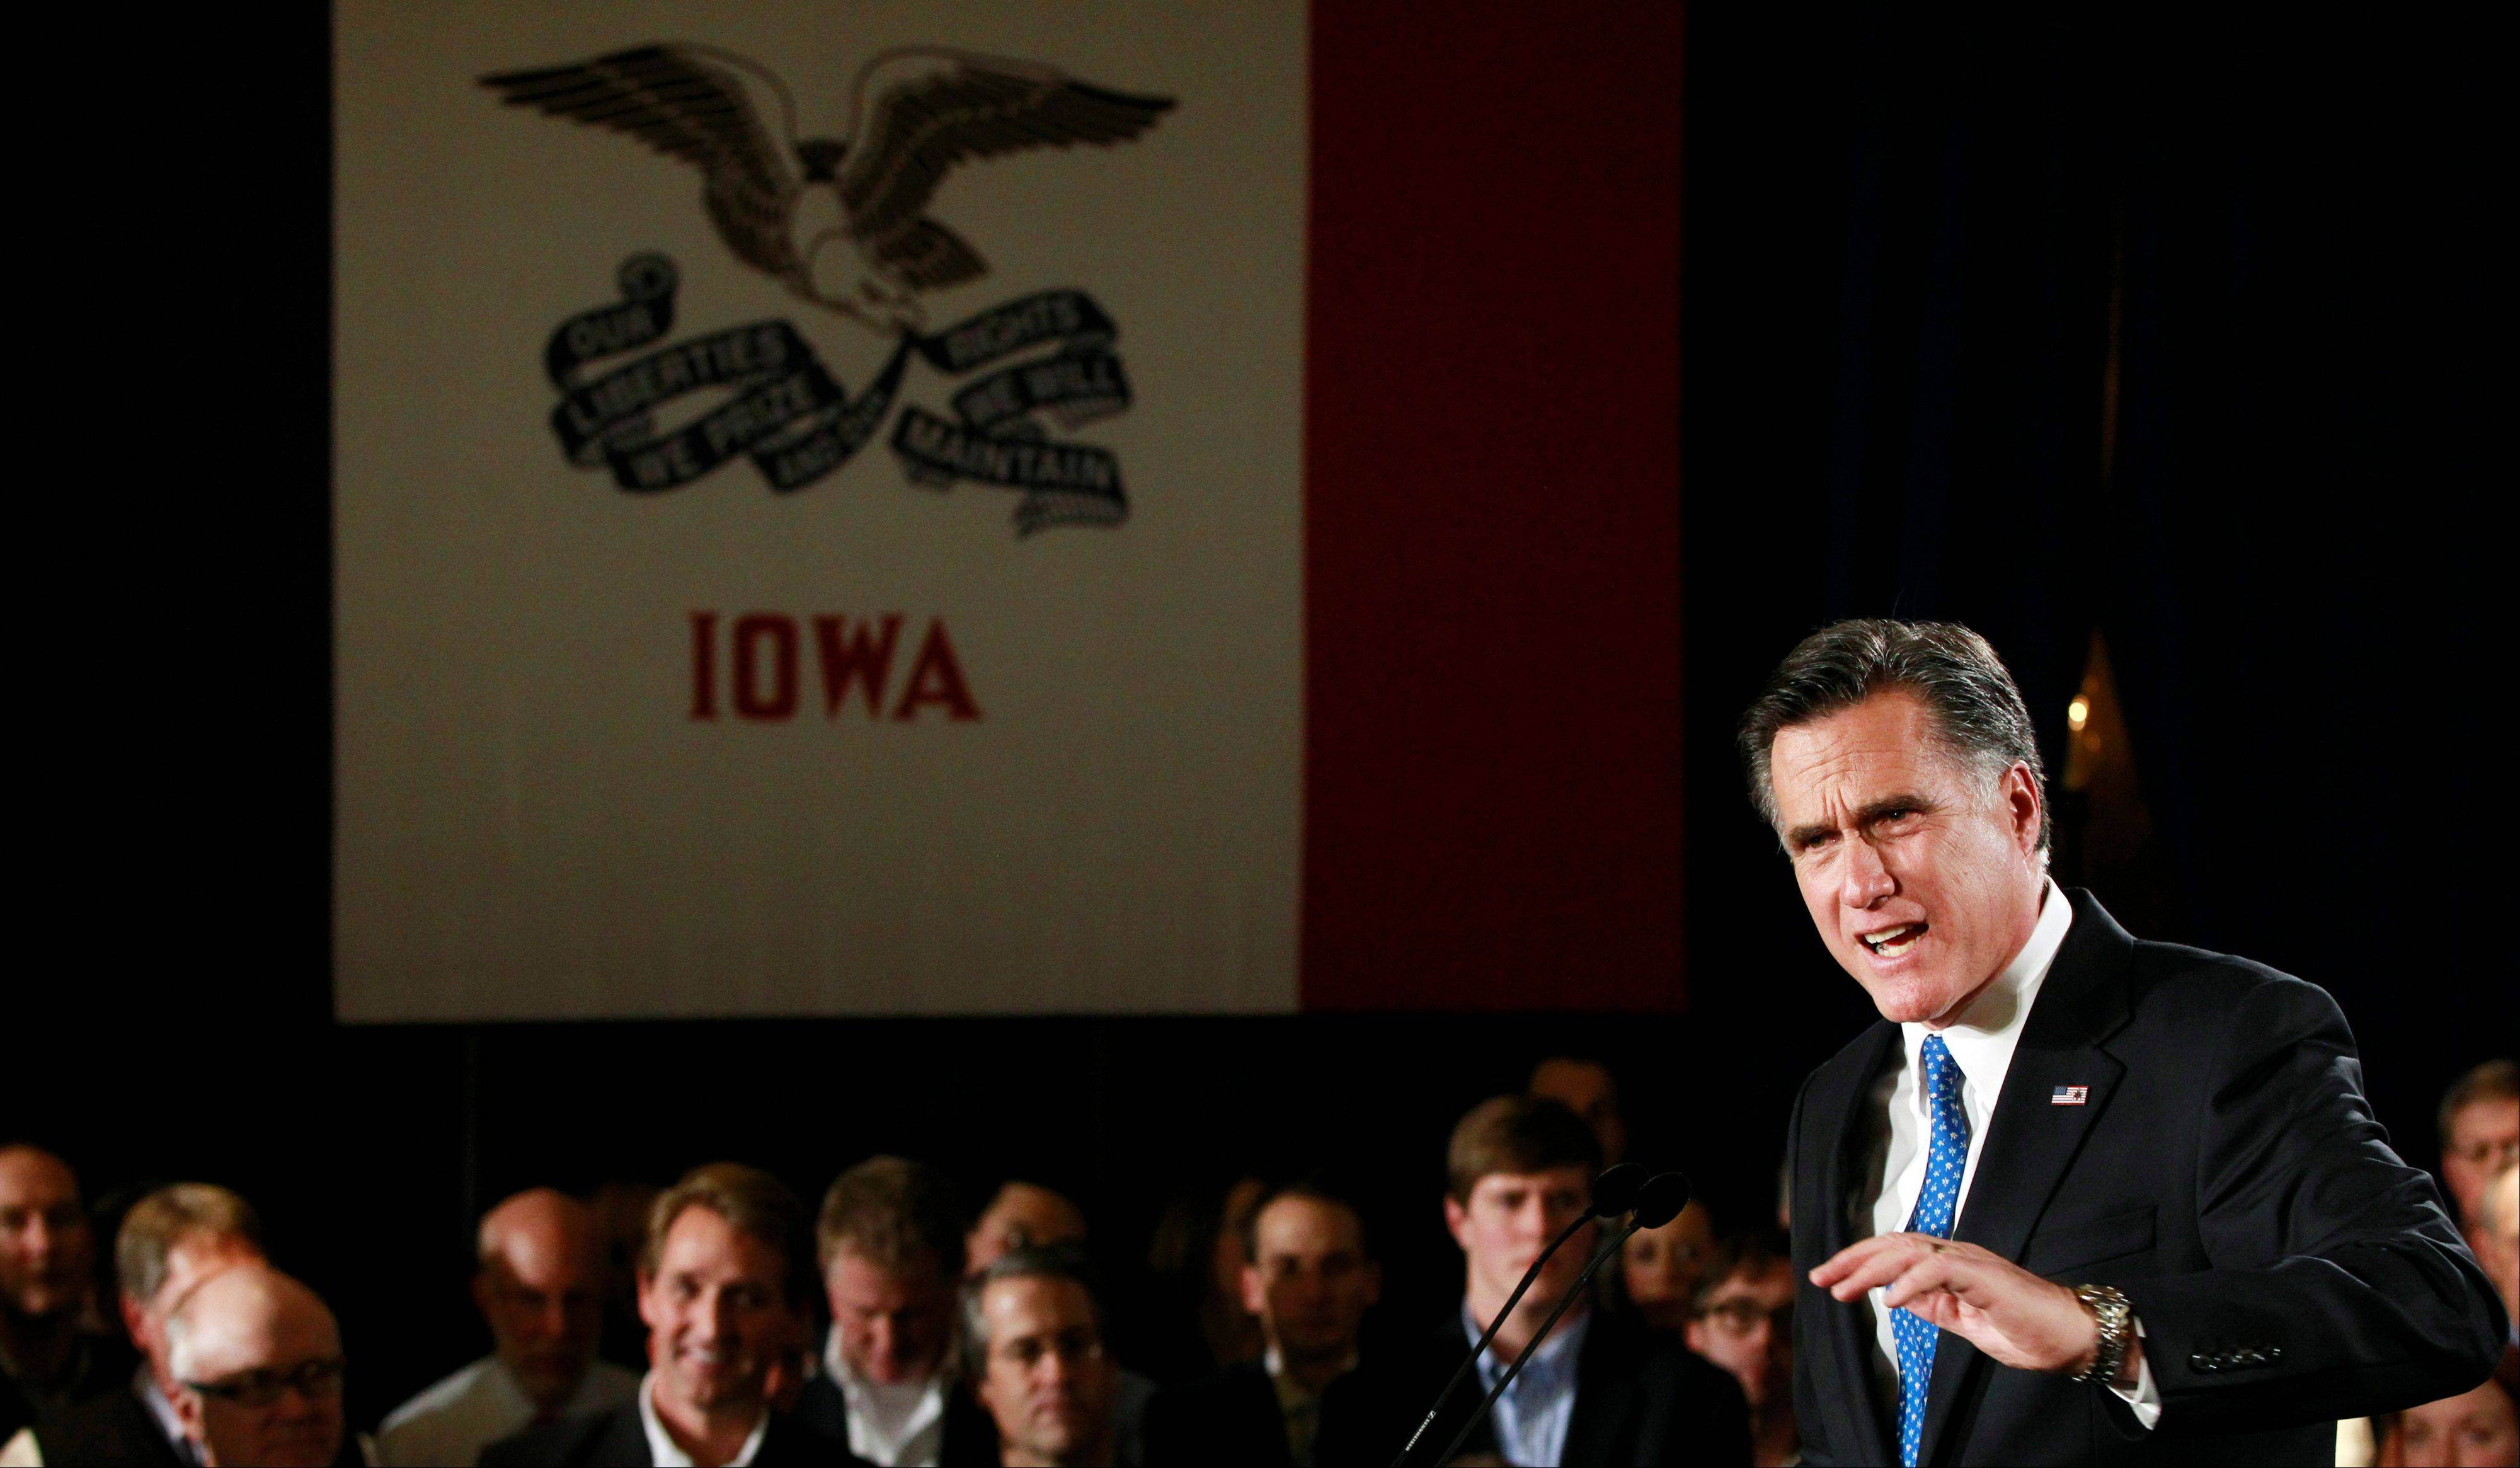 Republican presidential candidate, former Massachusetts Gov. Mitt Romney, speaks at his caucus night rally in Des Moines, Iowa, Tuesday, Jan. 3, 2012.